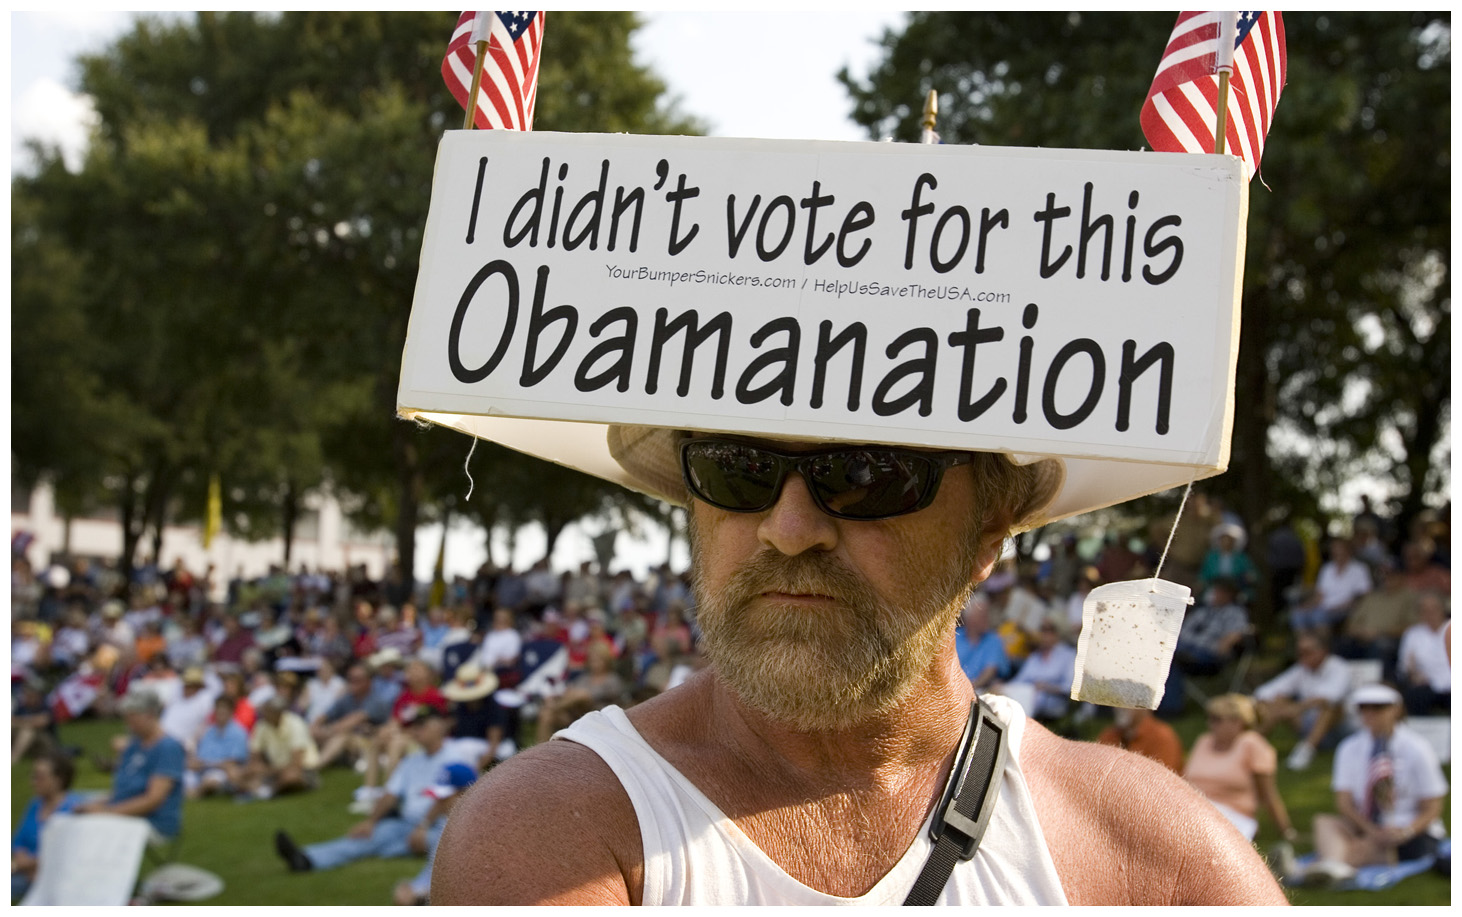 9/3/2009 - Jay Janner/AMERICAN-STATESMAN - A man who said he changed his name to Hustusa listens at the Tea Party Express rally in Waco on Thursday Sept. 3, 2009.  He said Hustusa stands for Help Us Save The USA.  Hustusa is from Vista, California, and is following the Tea Party Express across the country.